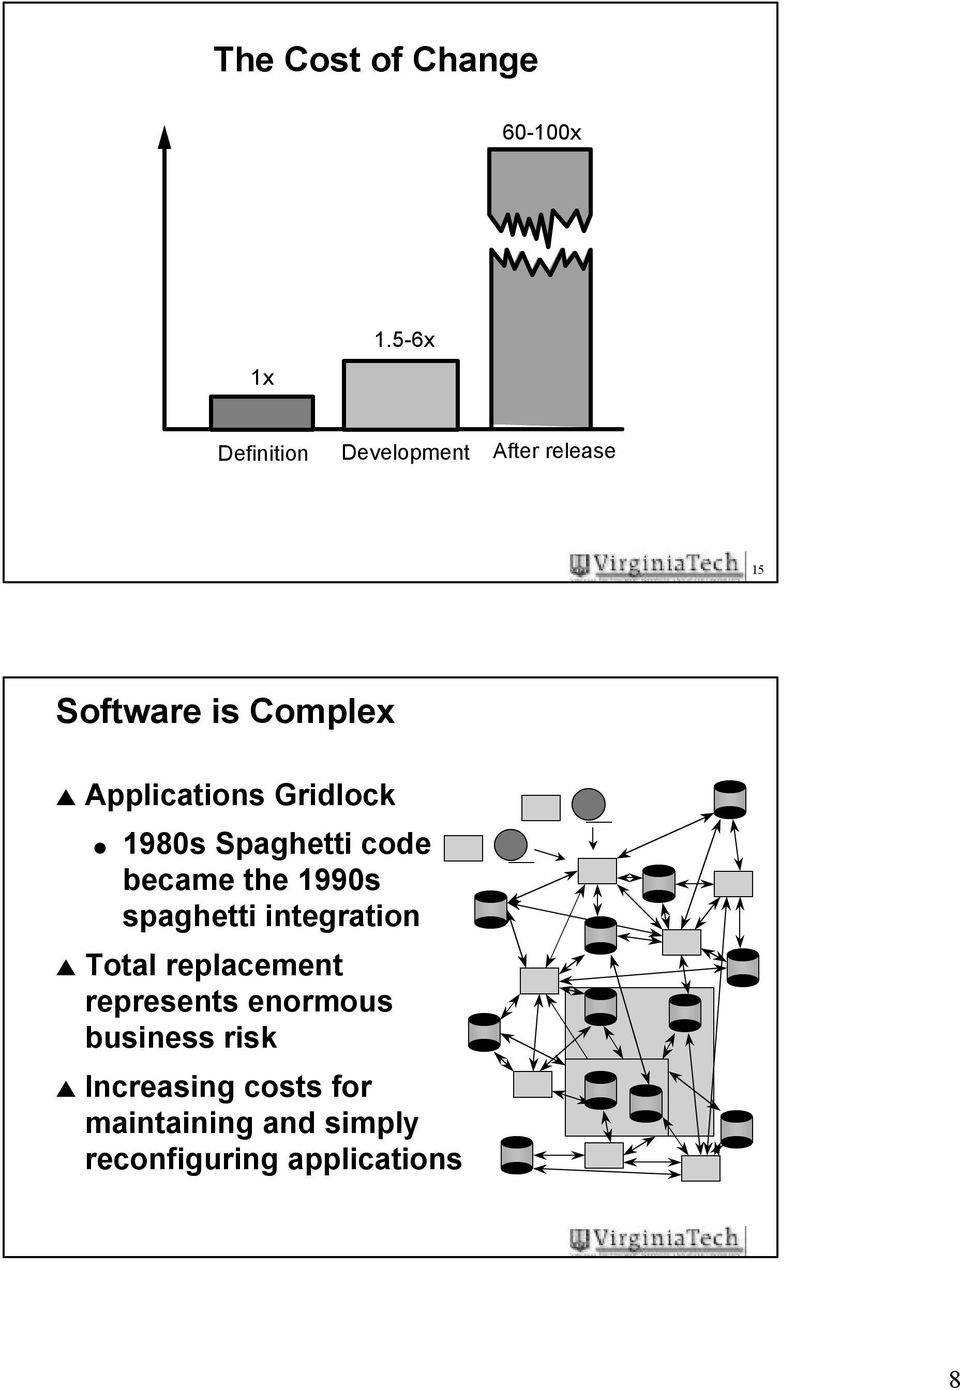 Software Engineering Cs5704 First Class Pdf State Diagrams Seilevel Applications Gridlock 1980s Spaghetti Code Became The 1990s